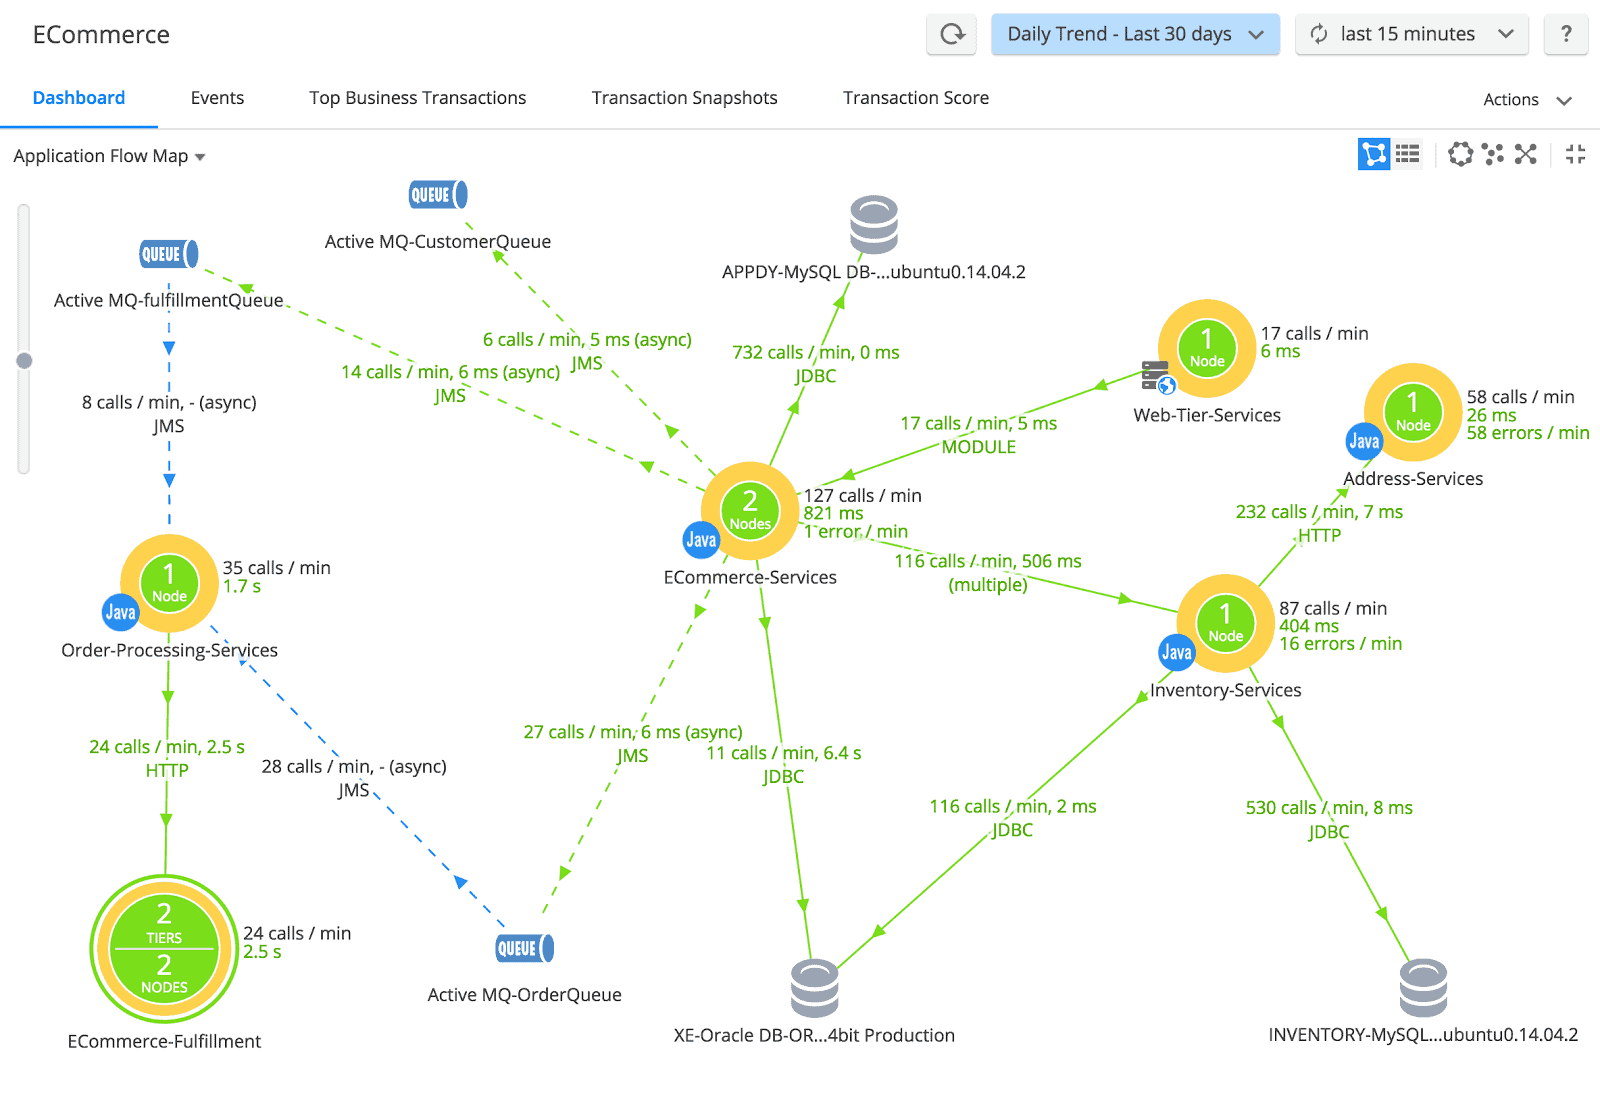 The AppDynamics topology map